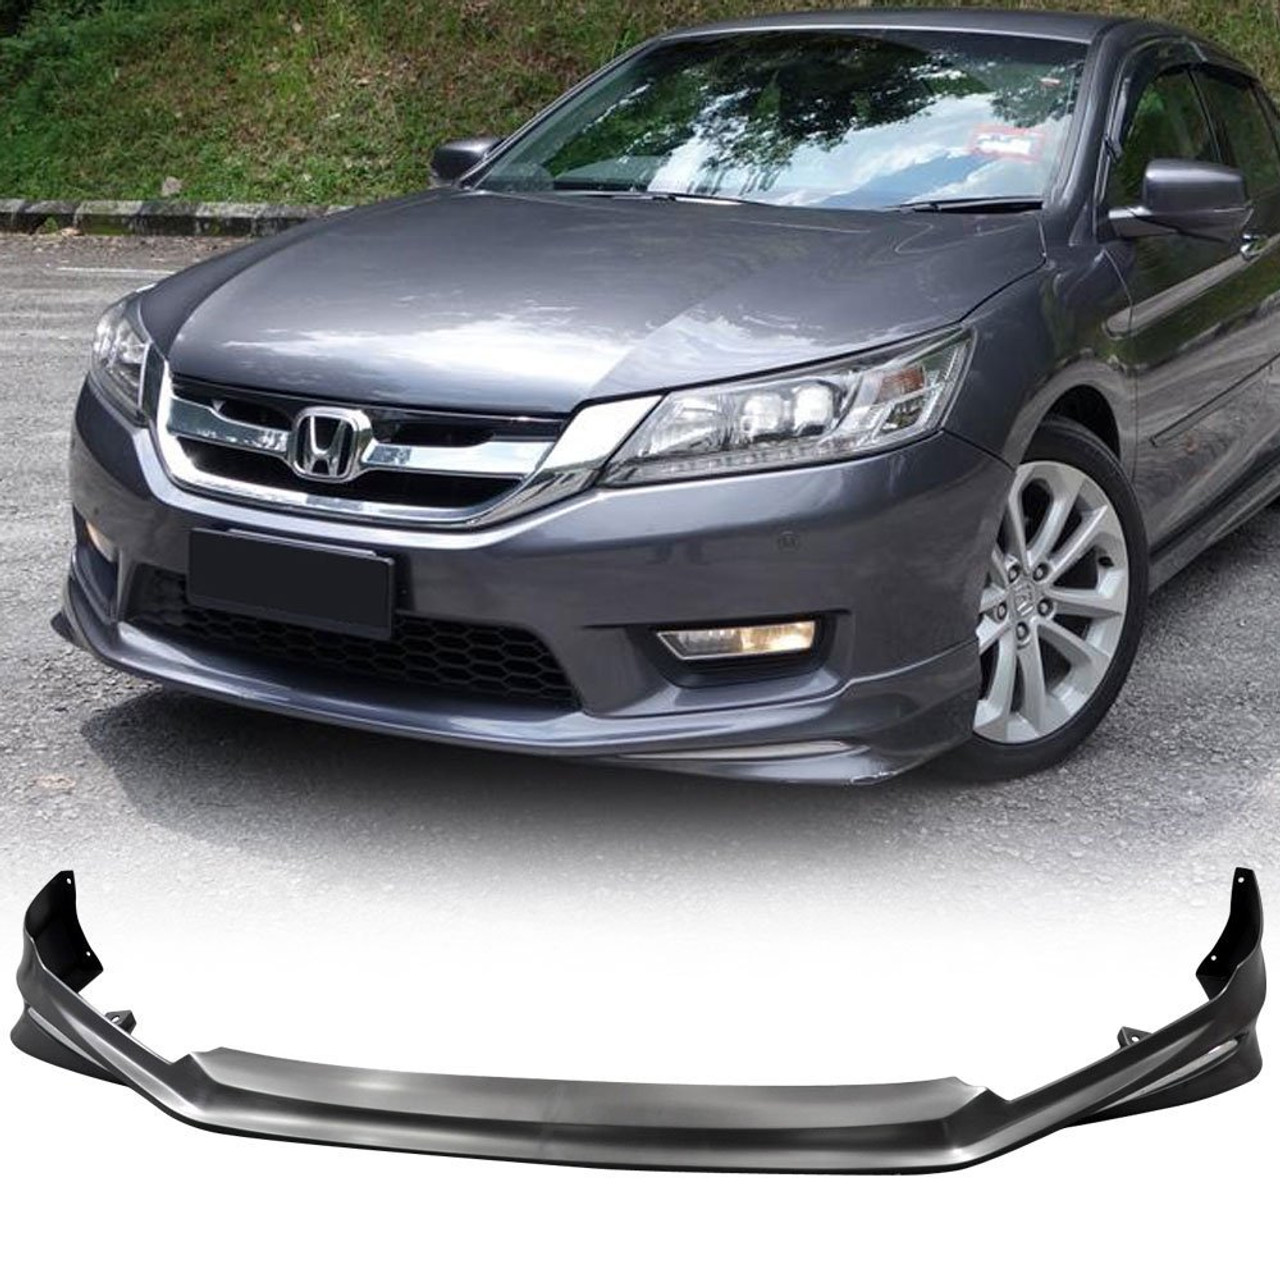 medium resolution of 1998 honda accord front emblem style